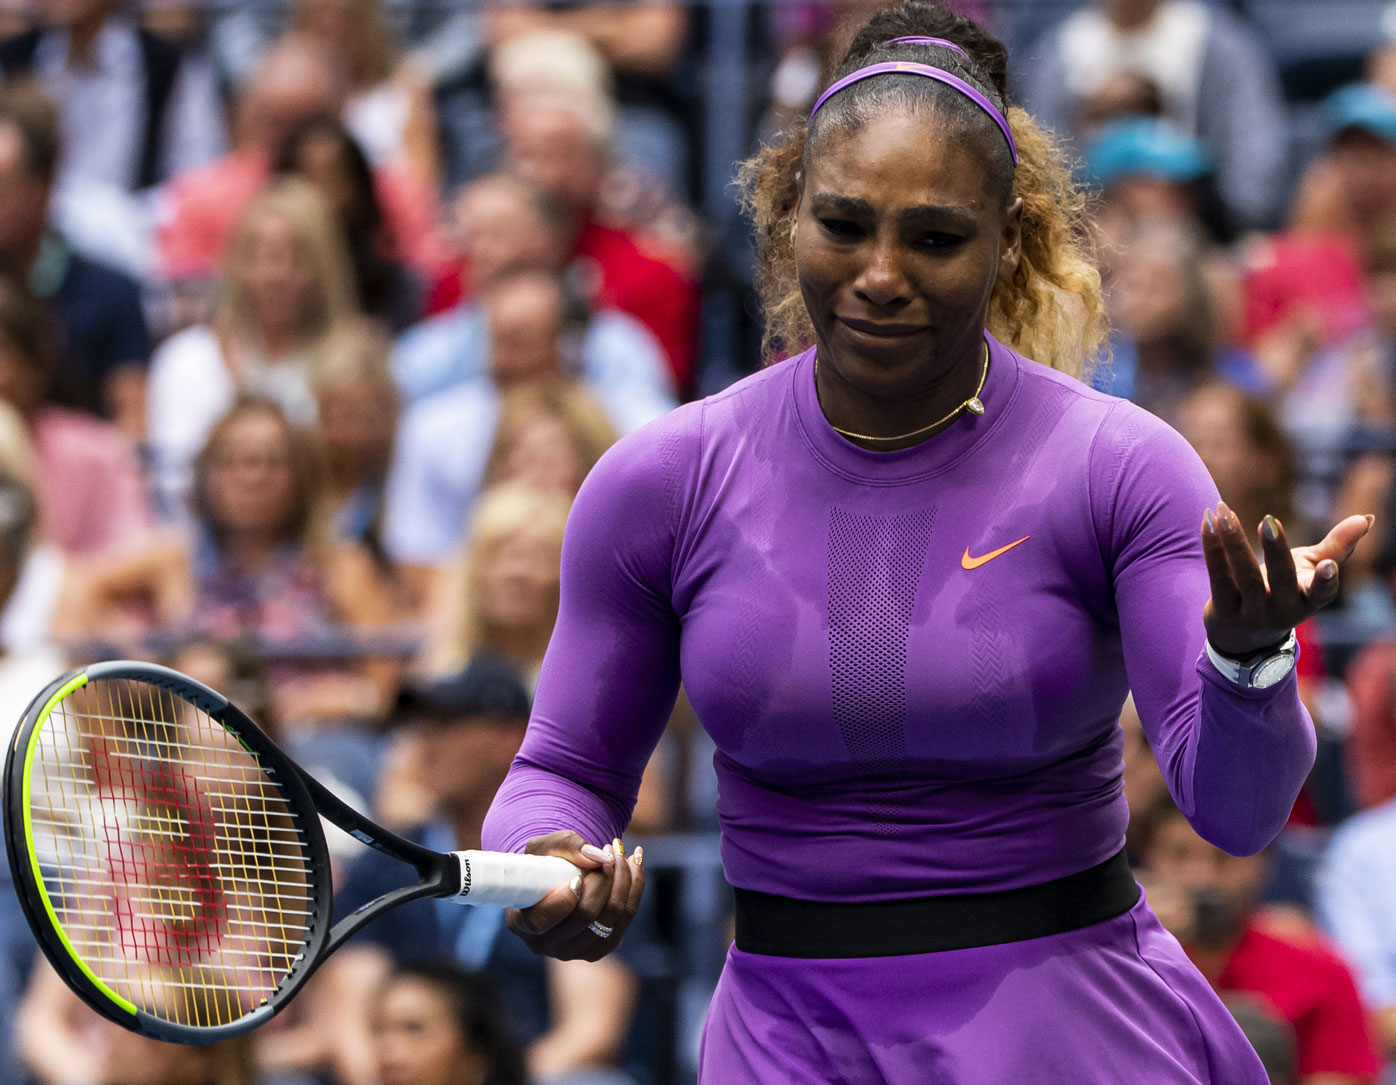 What caused this explosion of Serena rage, Wustoo